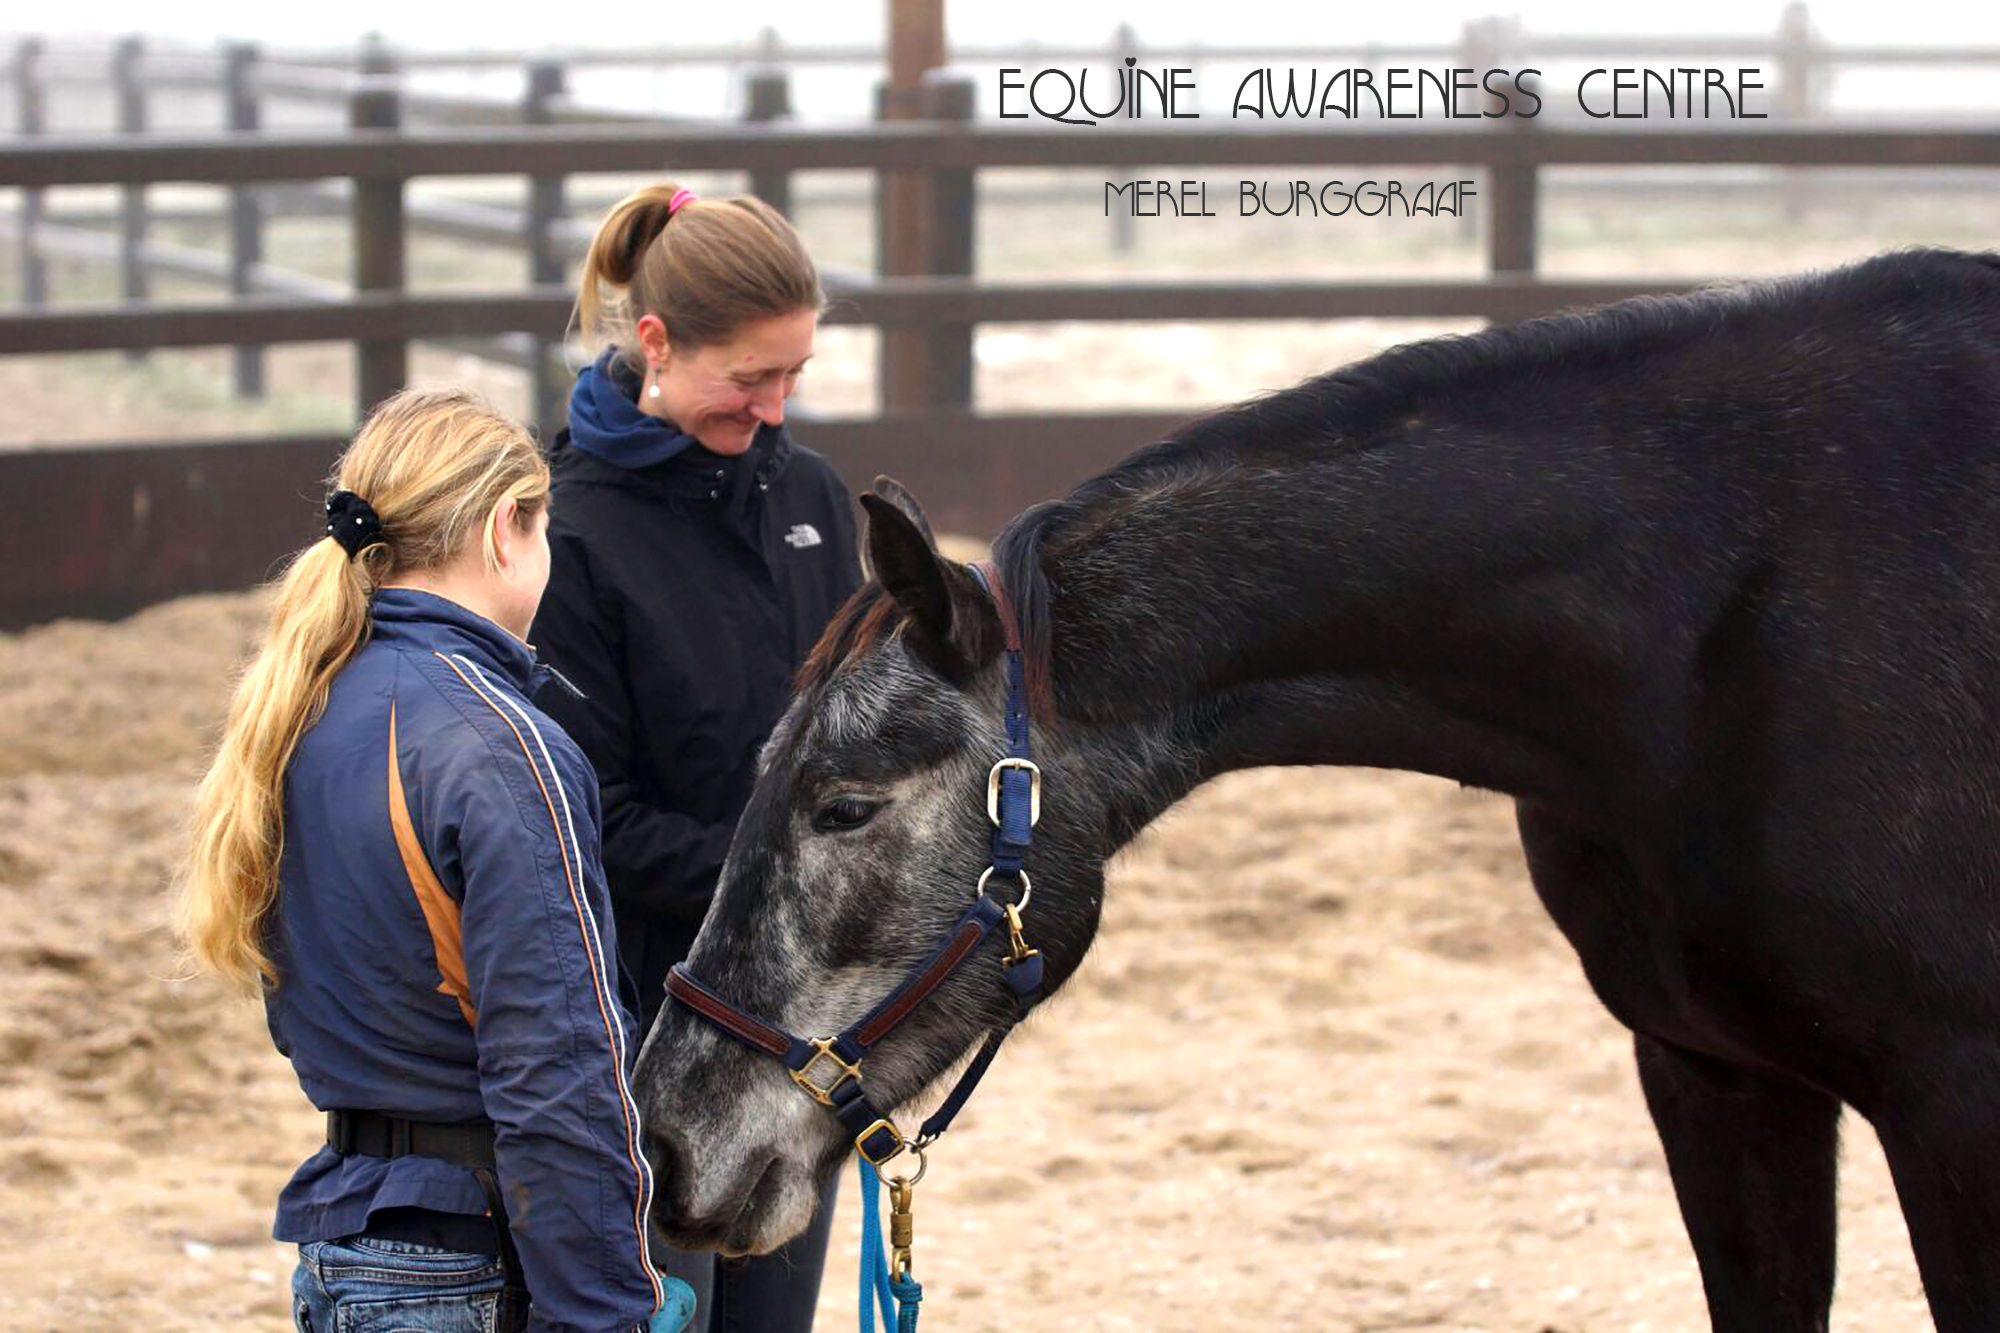 Equine Awareness Centre Merel Burggraaf succes paardentraining hoefsmid clicker training paard paarden Hippie Boy 2